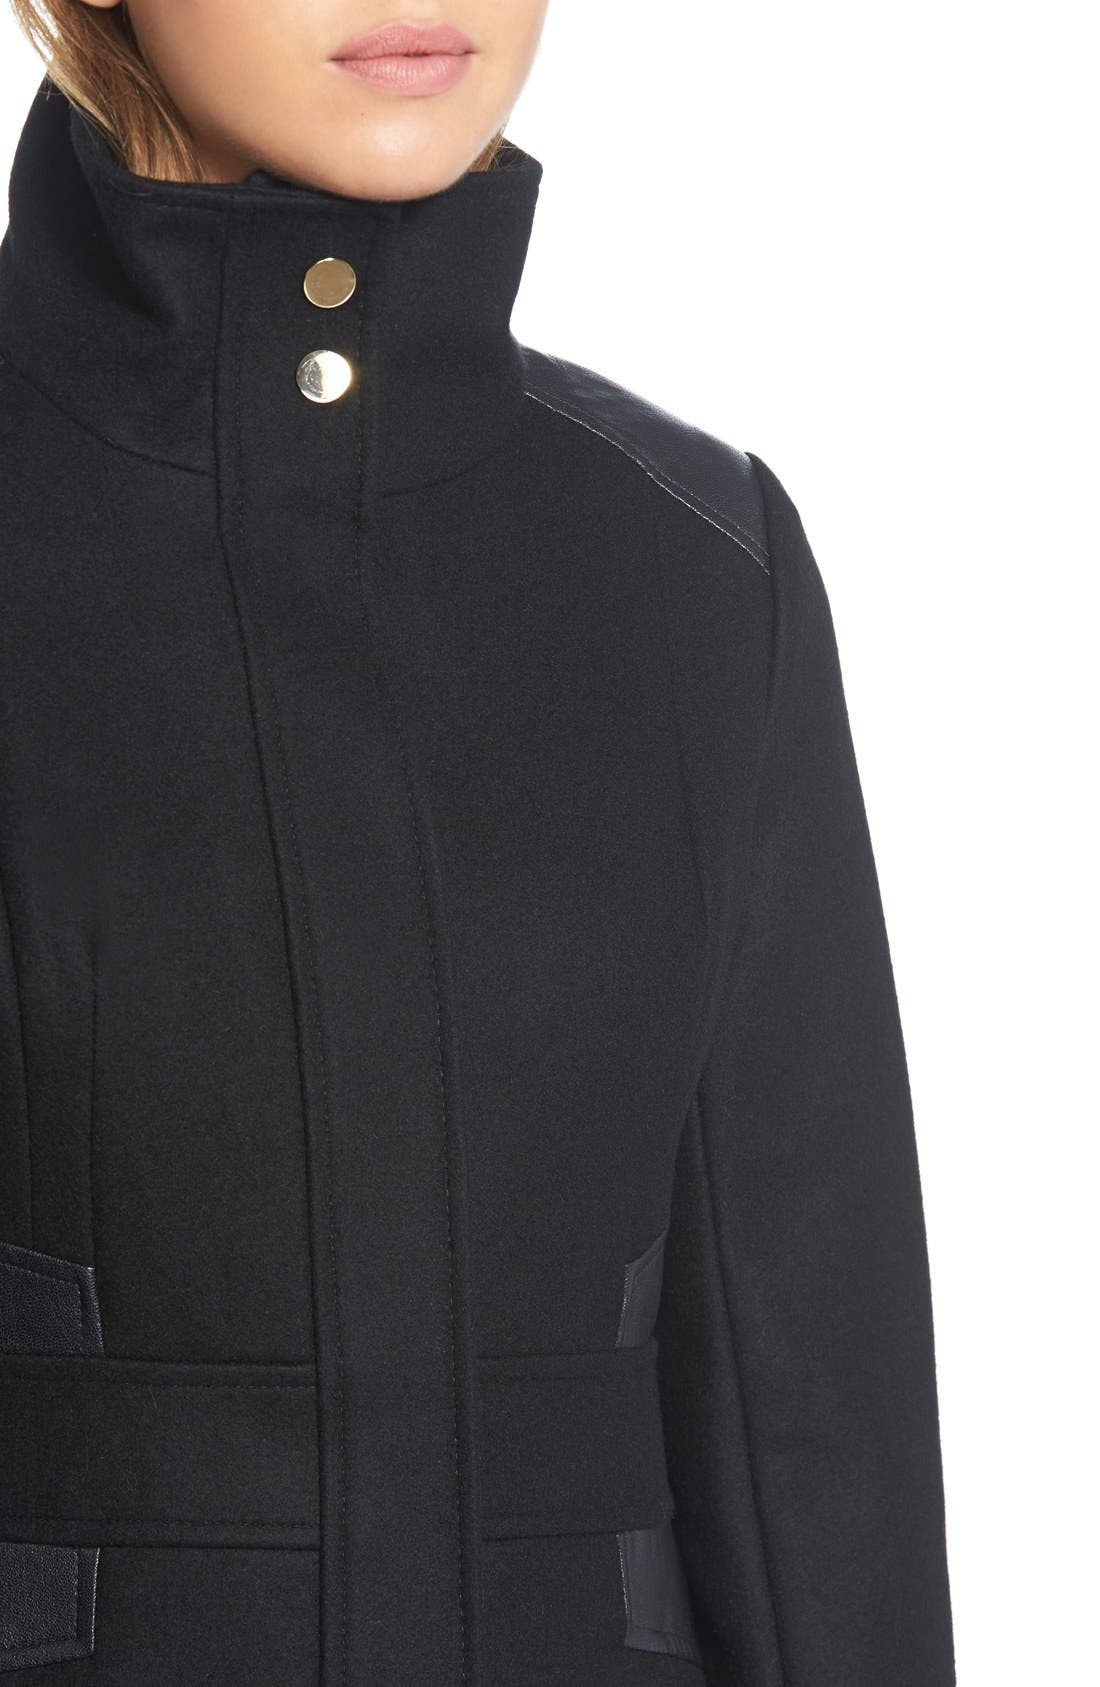 Wool Blend Coat with Faux Leather Trim,                             Alternate thumbnail 5, color,                             001